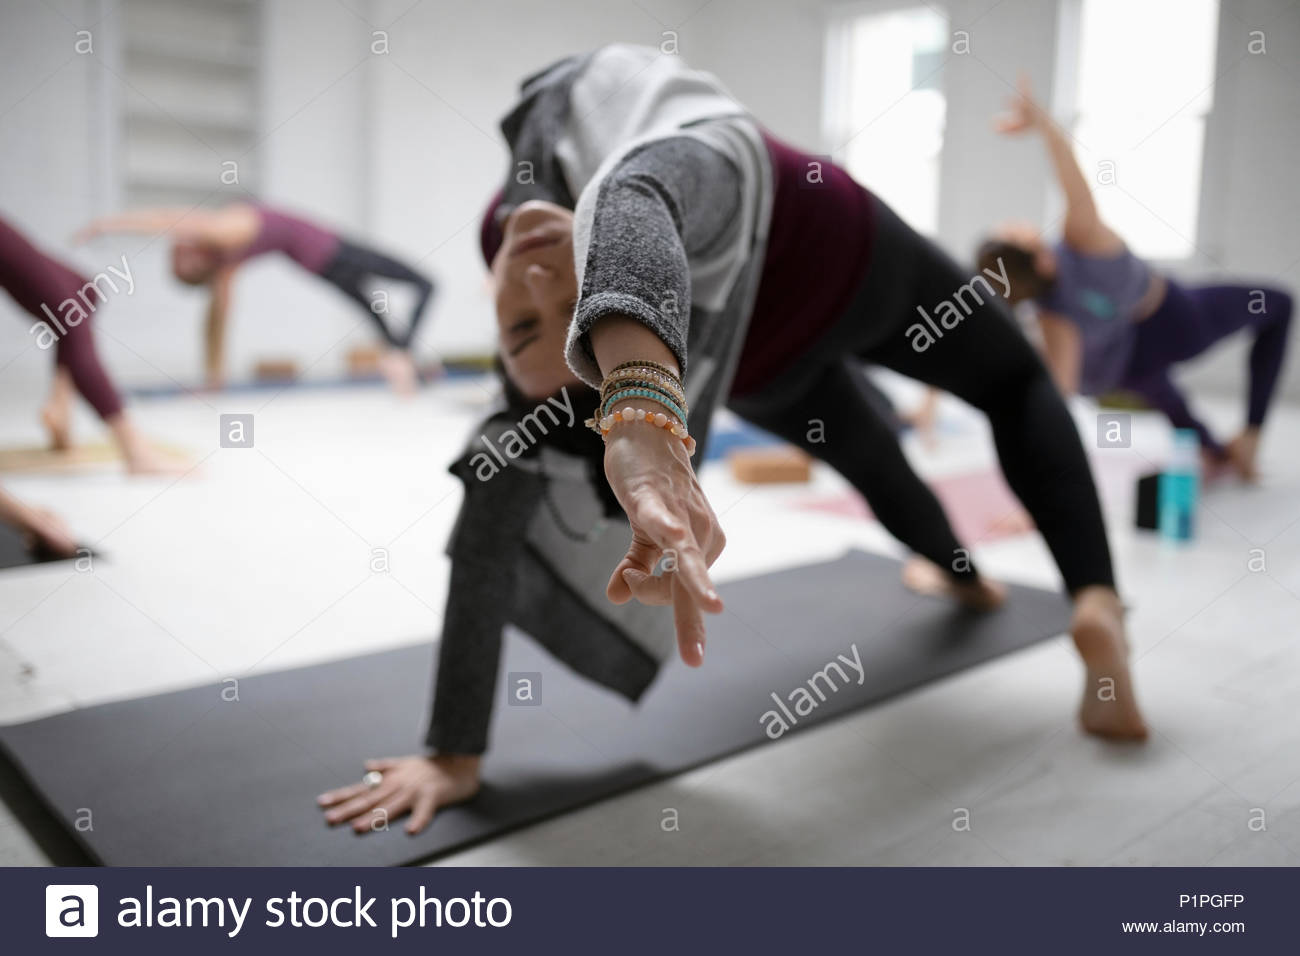 Woman practicing yoga backbend pose and gyan mudra in yoga class - Stock Image